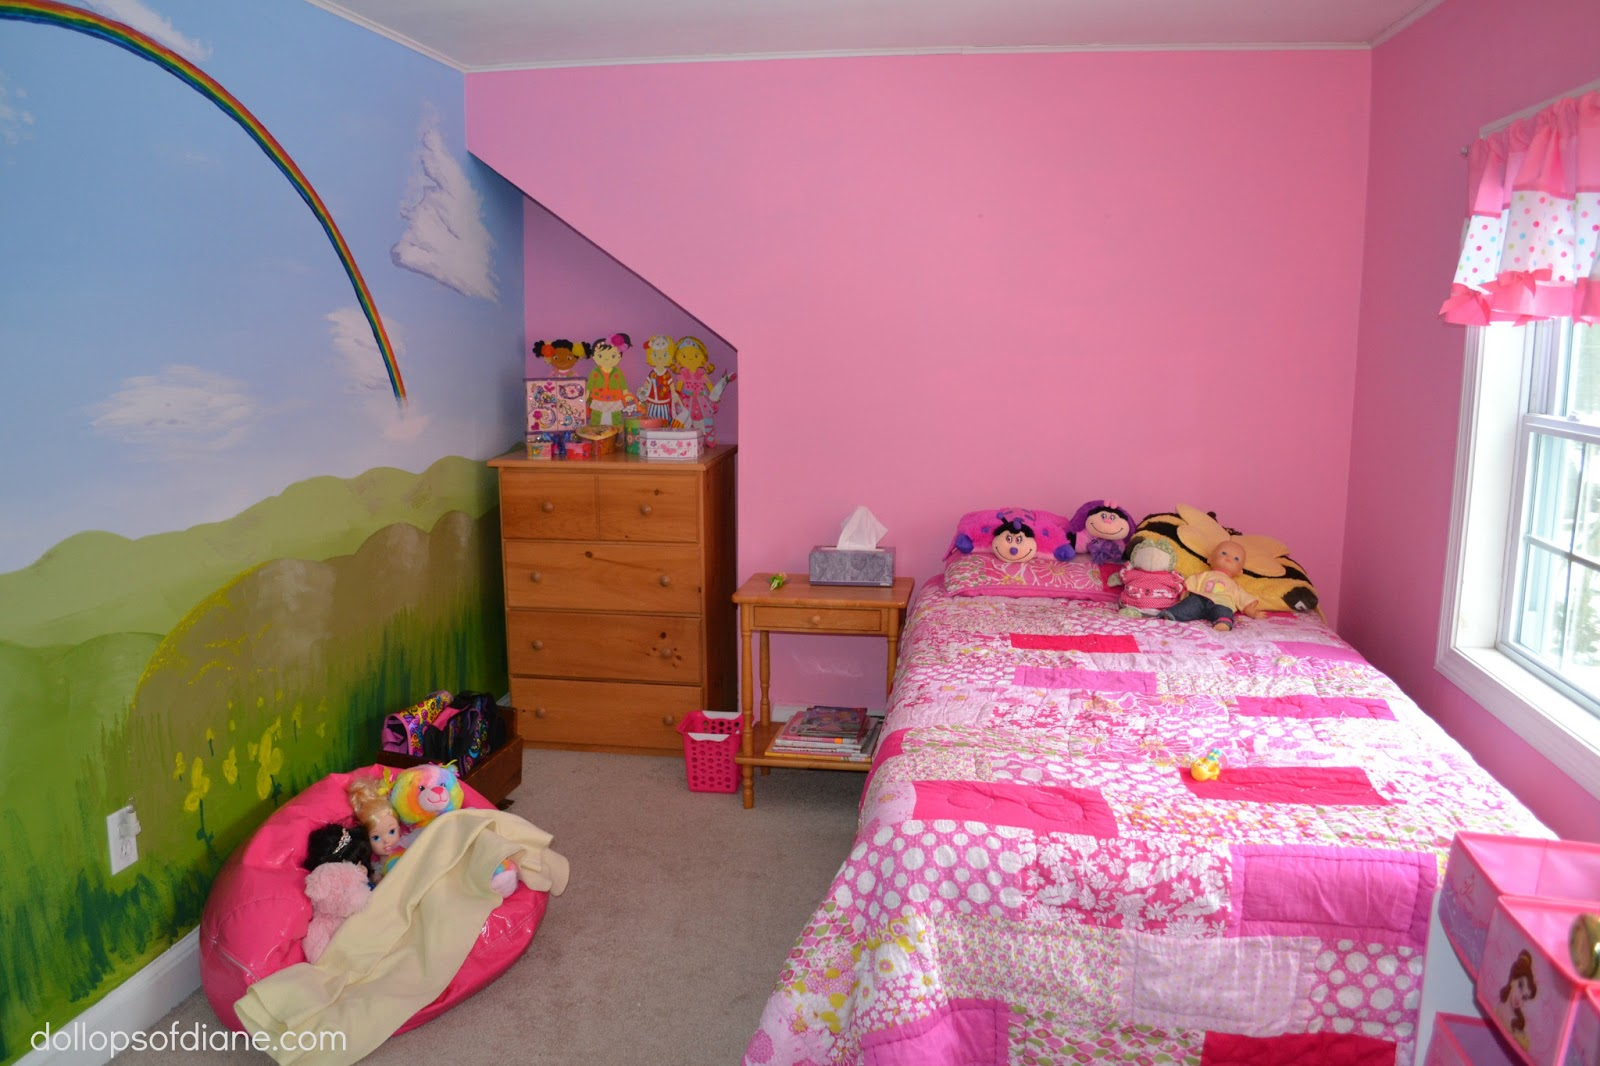 Dollops of diane the perfect room for a five year old girl 5 year old boy room decoration